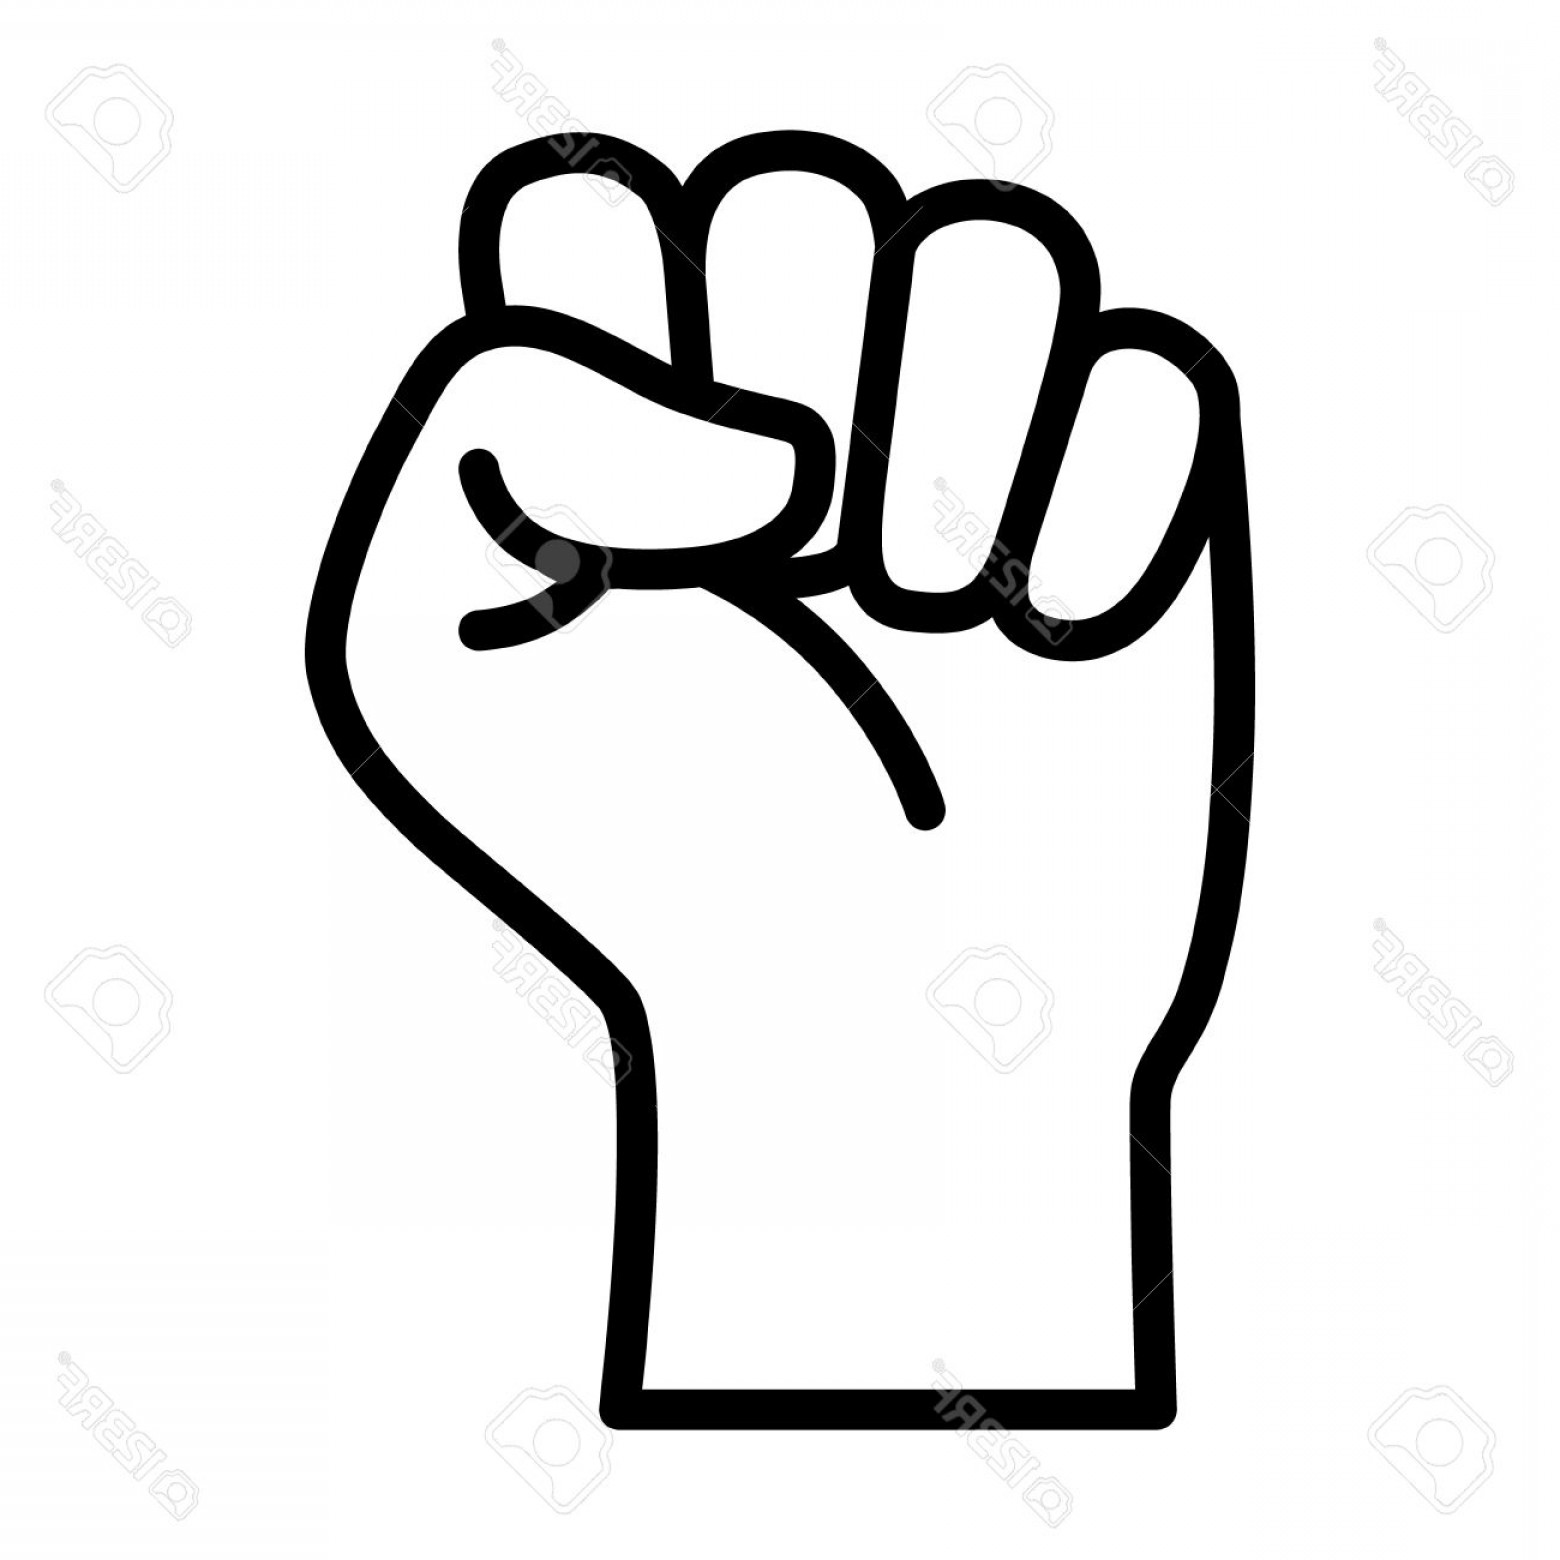 Black Power Fist Vector: Photostock Vector Raised Fist Symbol Of Victory Strength Power And Solidarity Line Art Icon For Apps And Websites